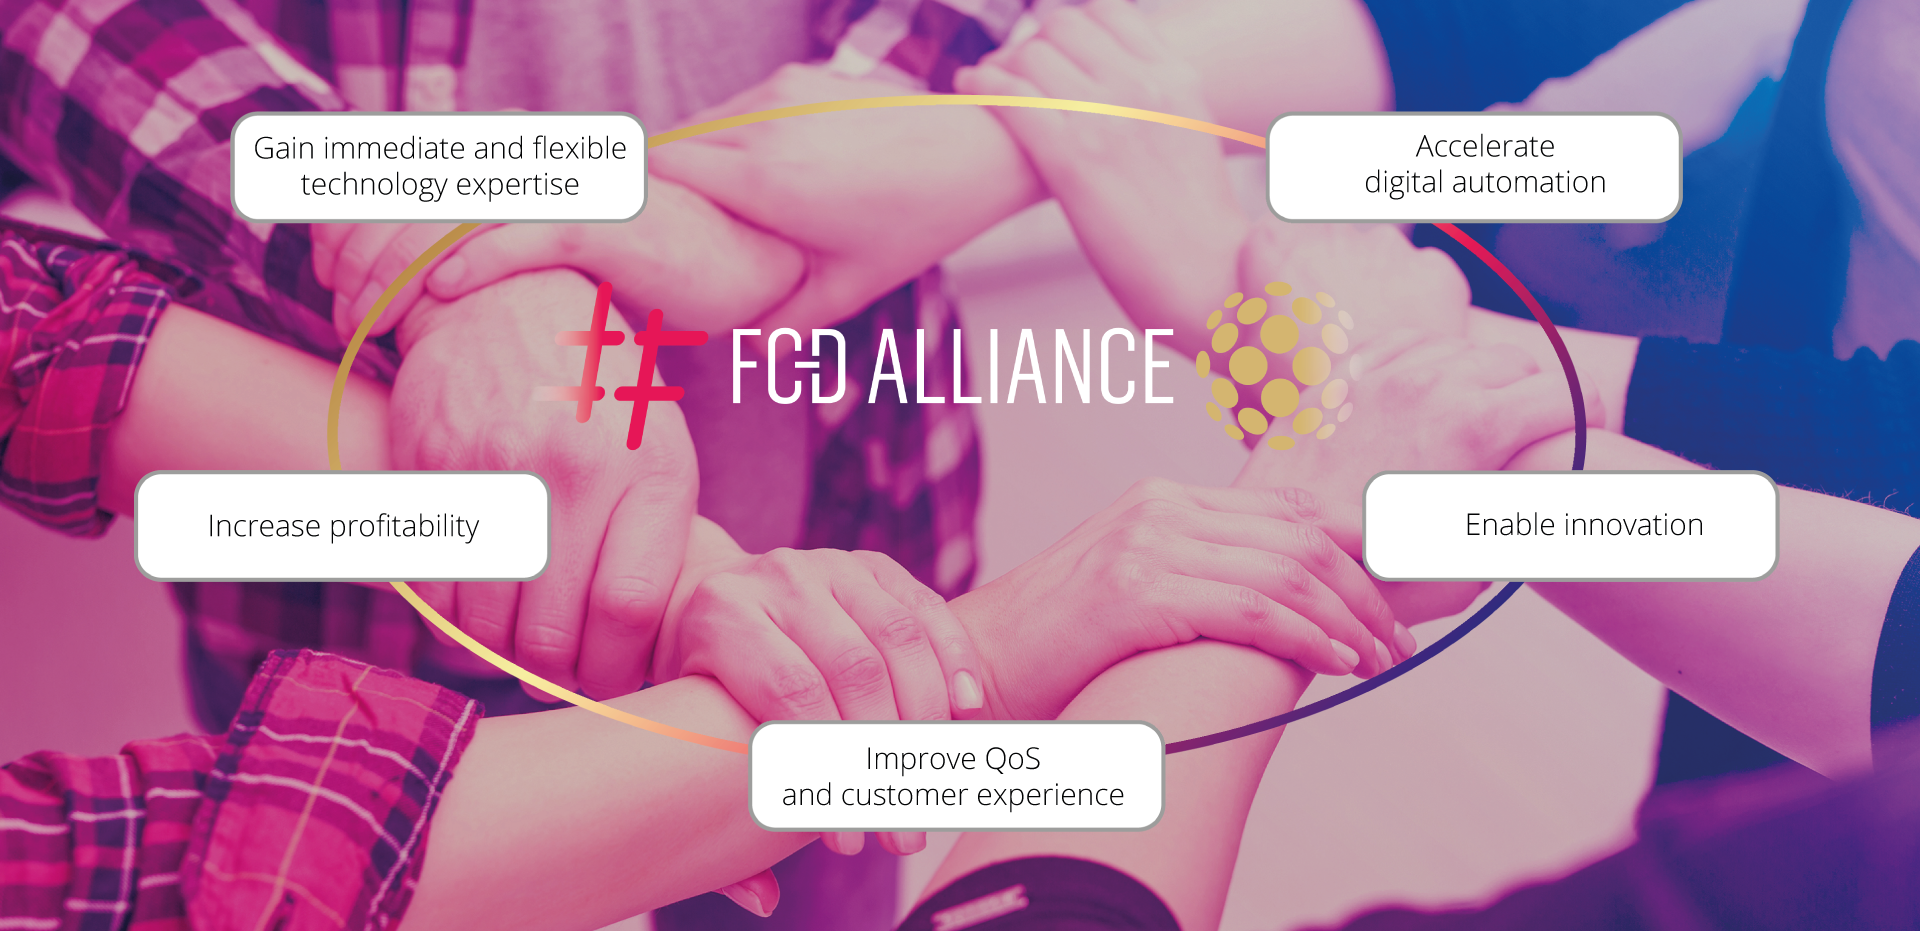 Future Connections and Grupo Ditech launch the FCD Alliance to support digital transformation